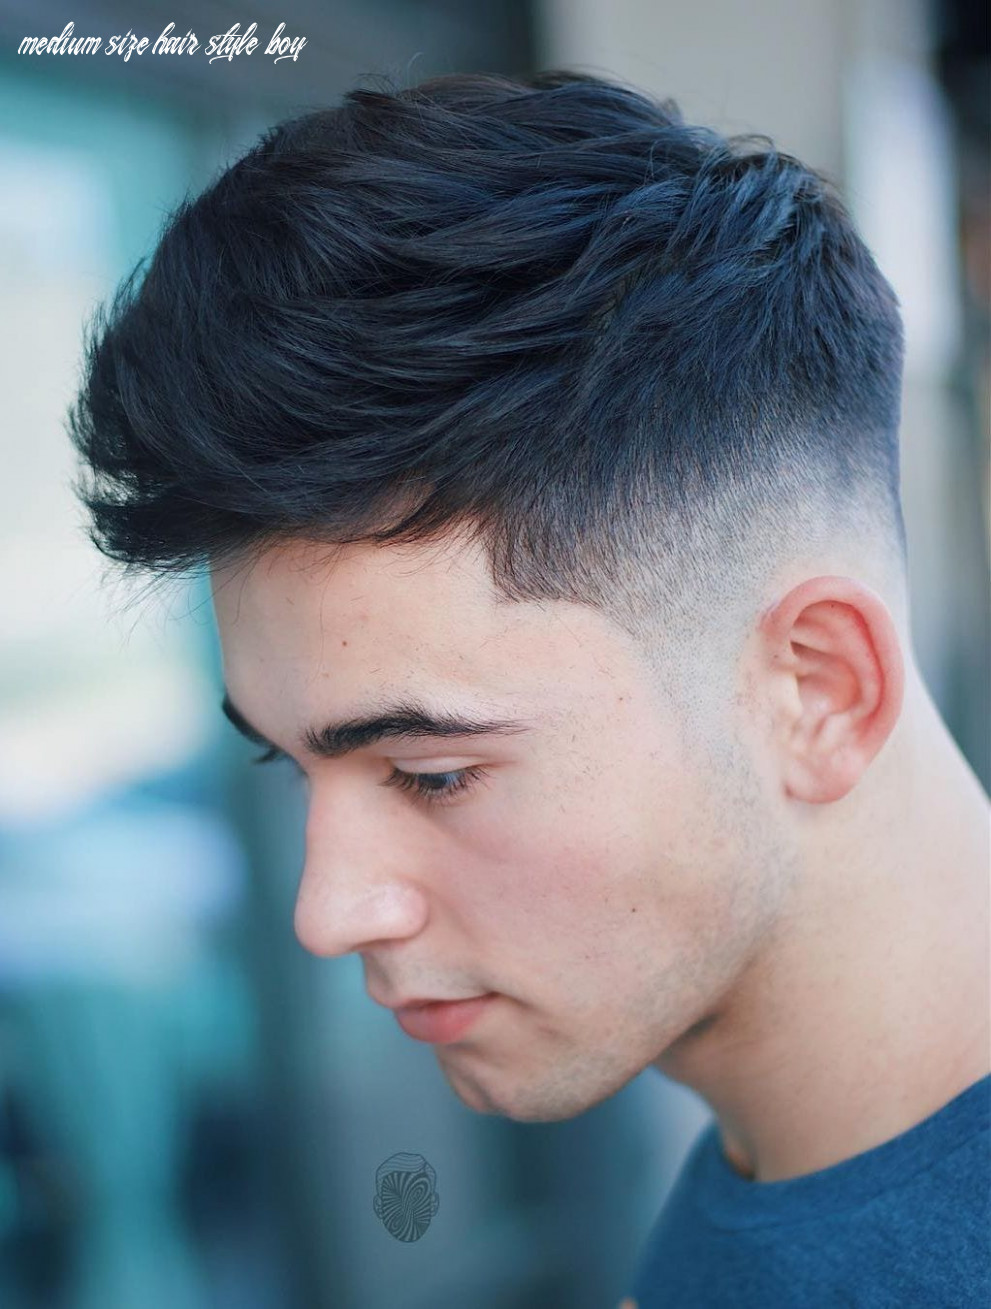 9 best hairstyles for teenage boys the ultimate guide 9 medium size hair style boy